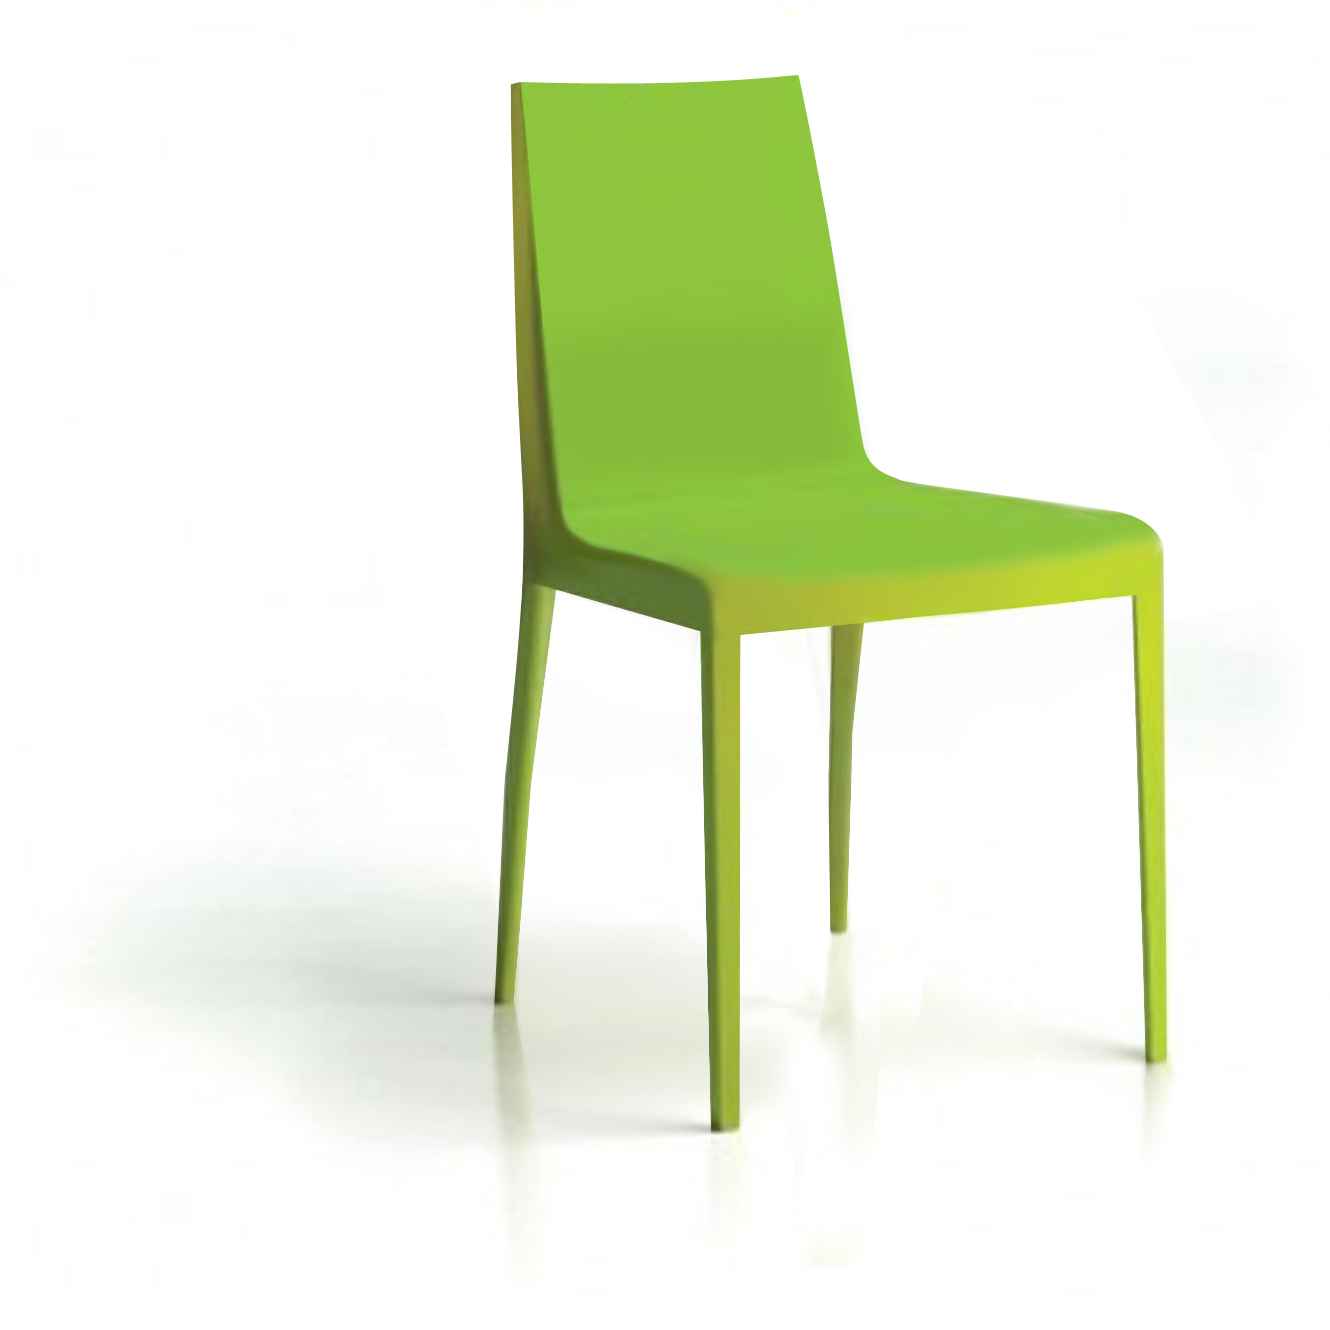 chair design london amish high anna  new by nick garrett desight for